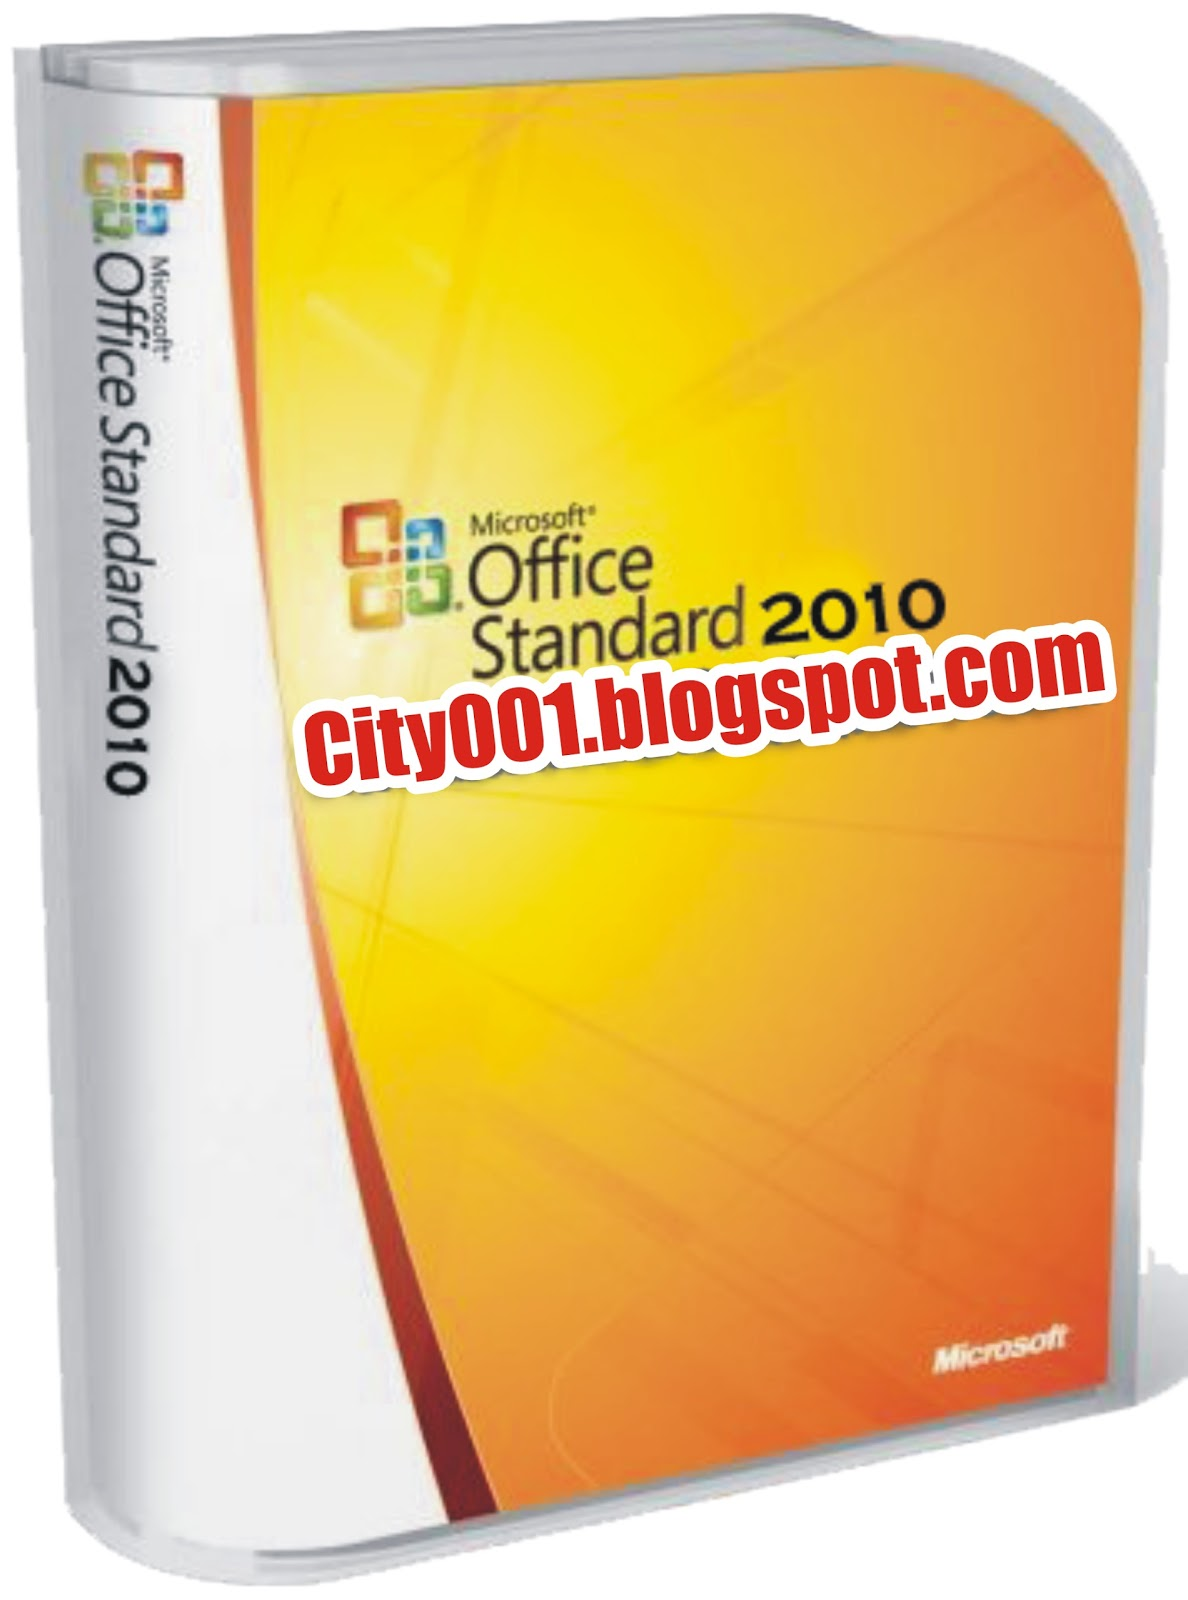 office 2010 standard download free full version